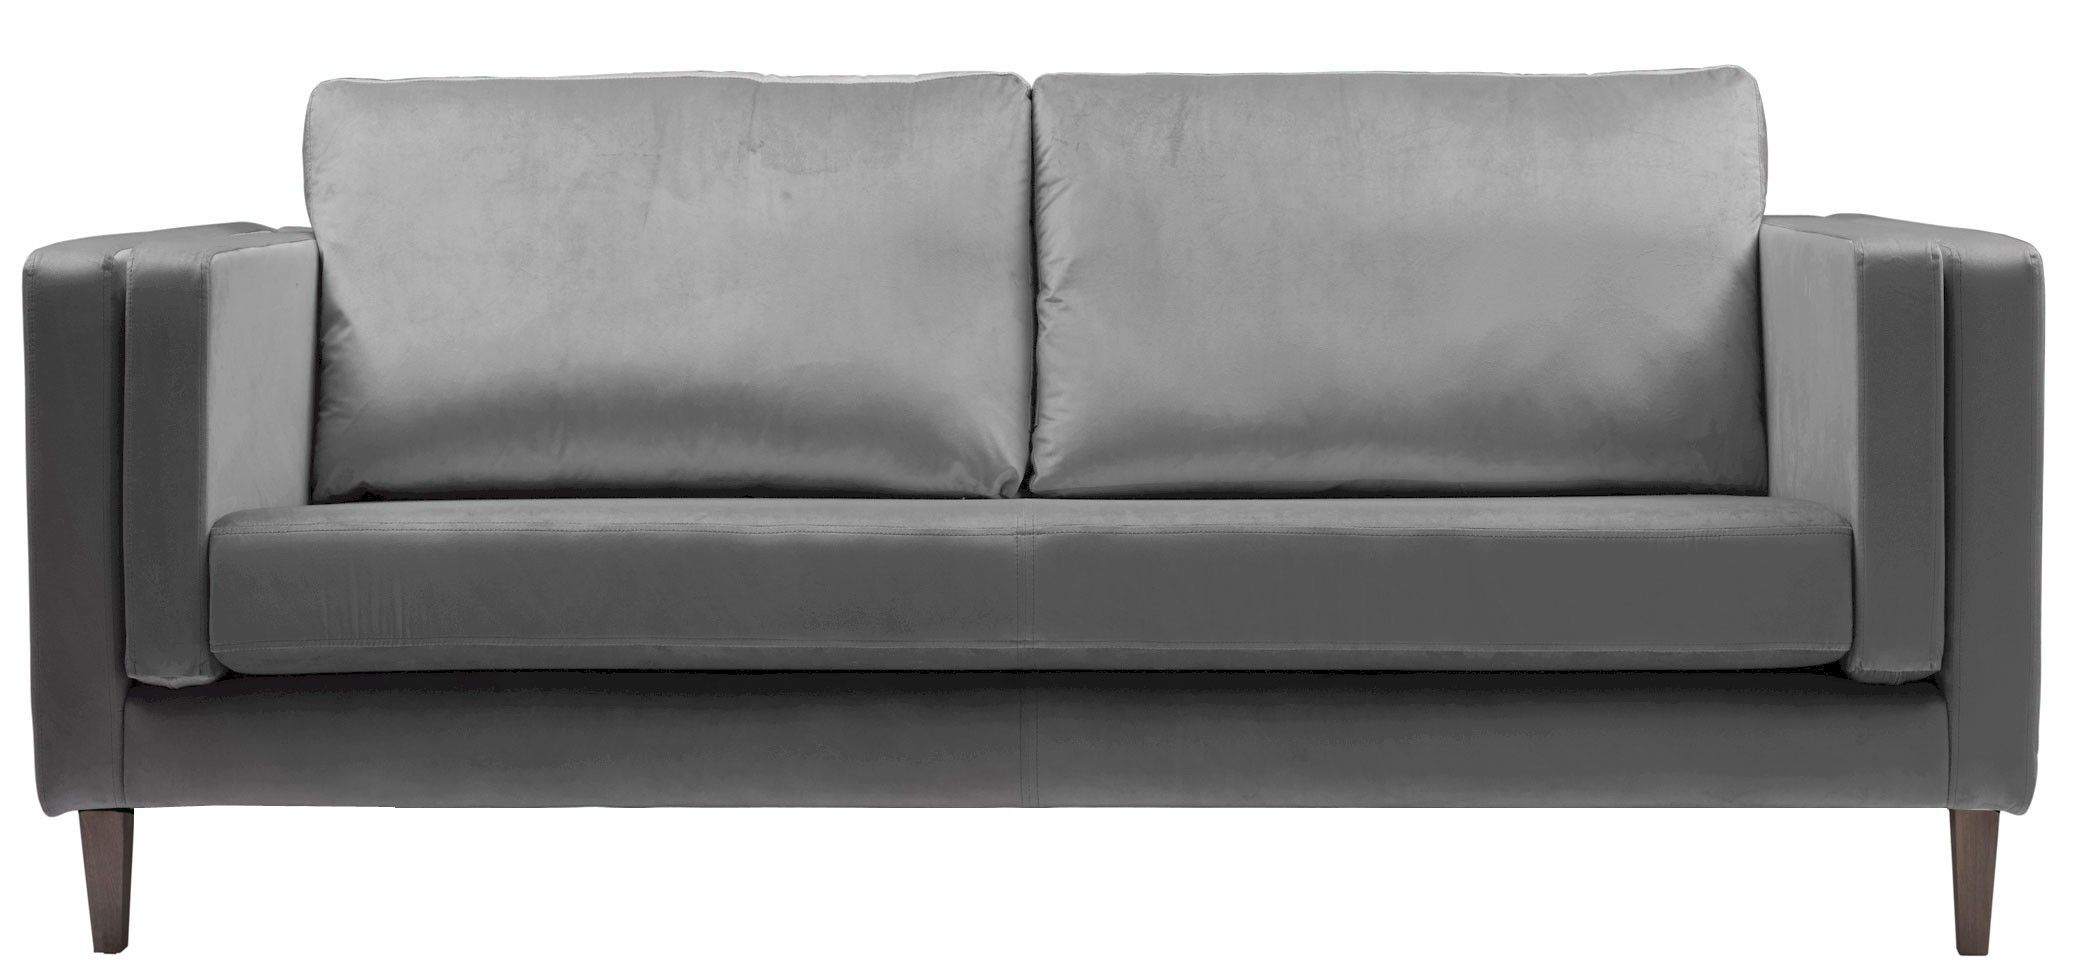 Sofa (View 19 of 20)